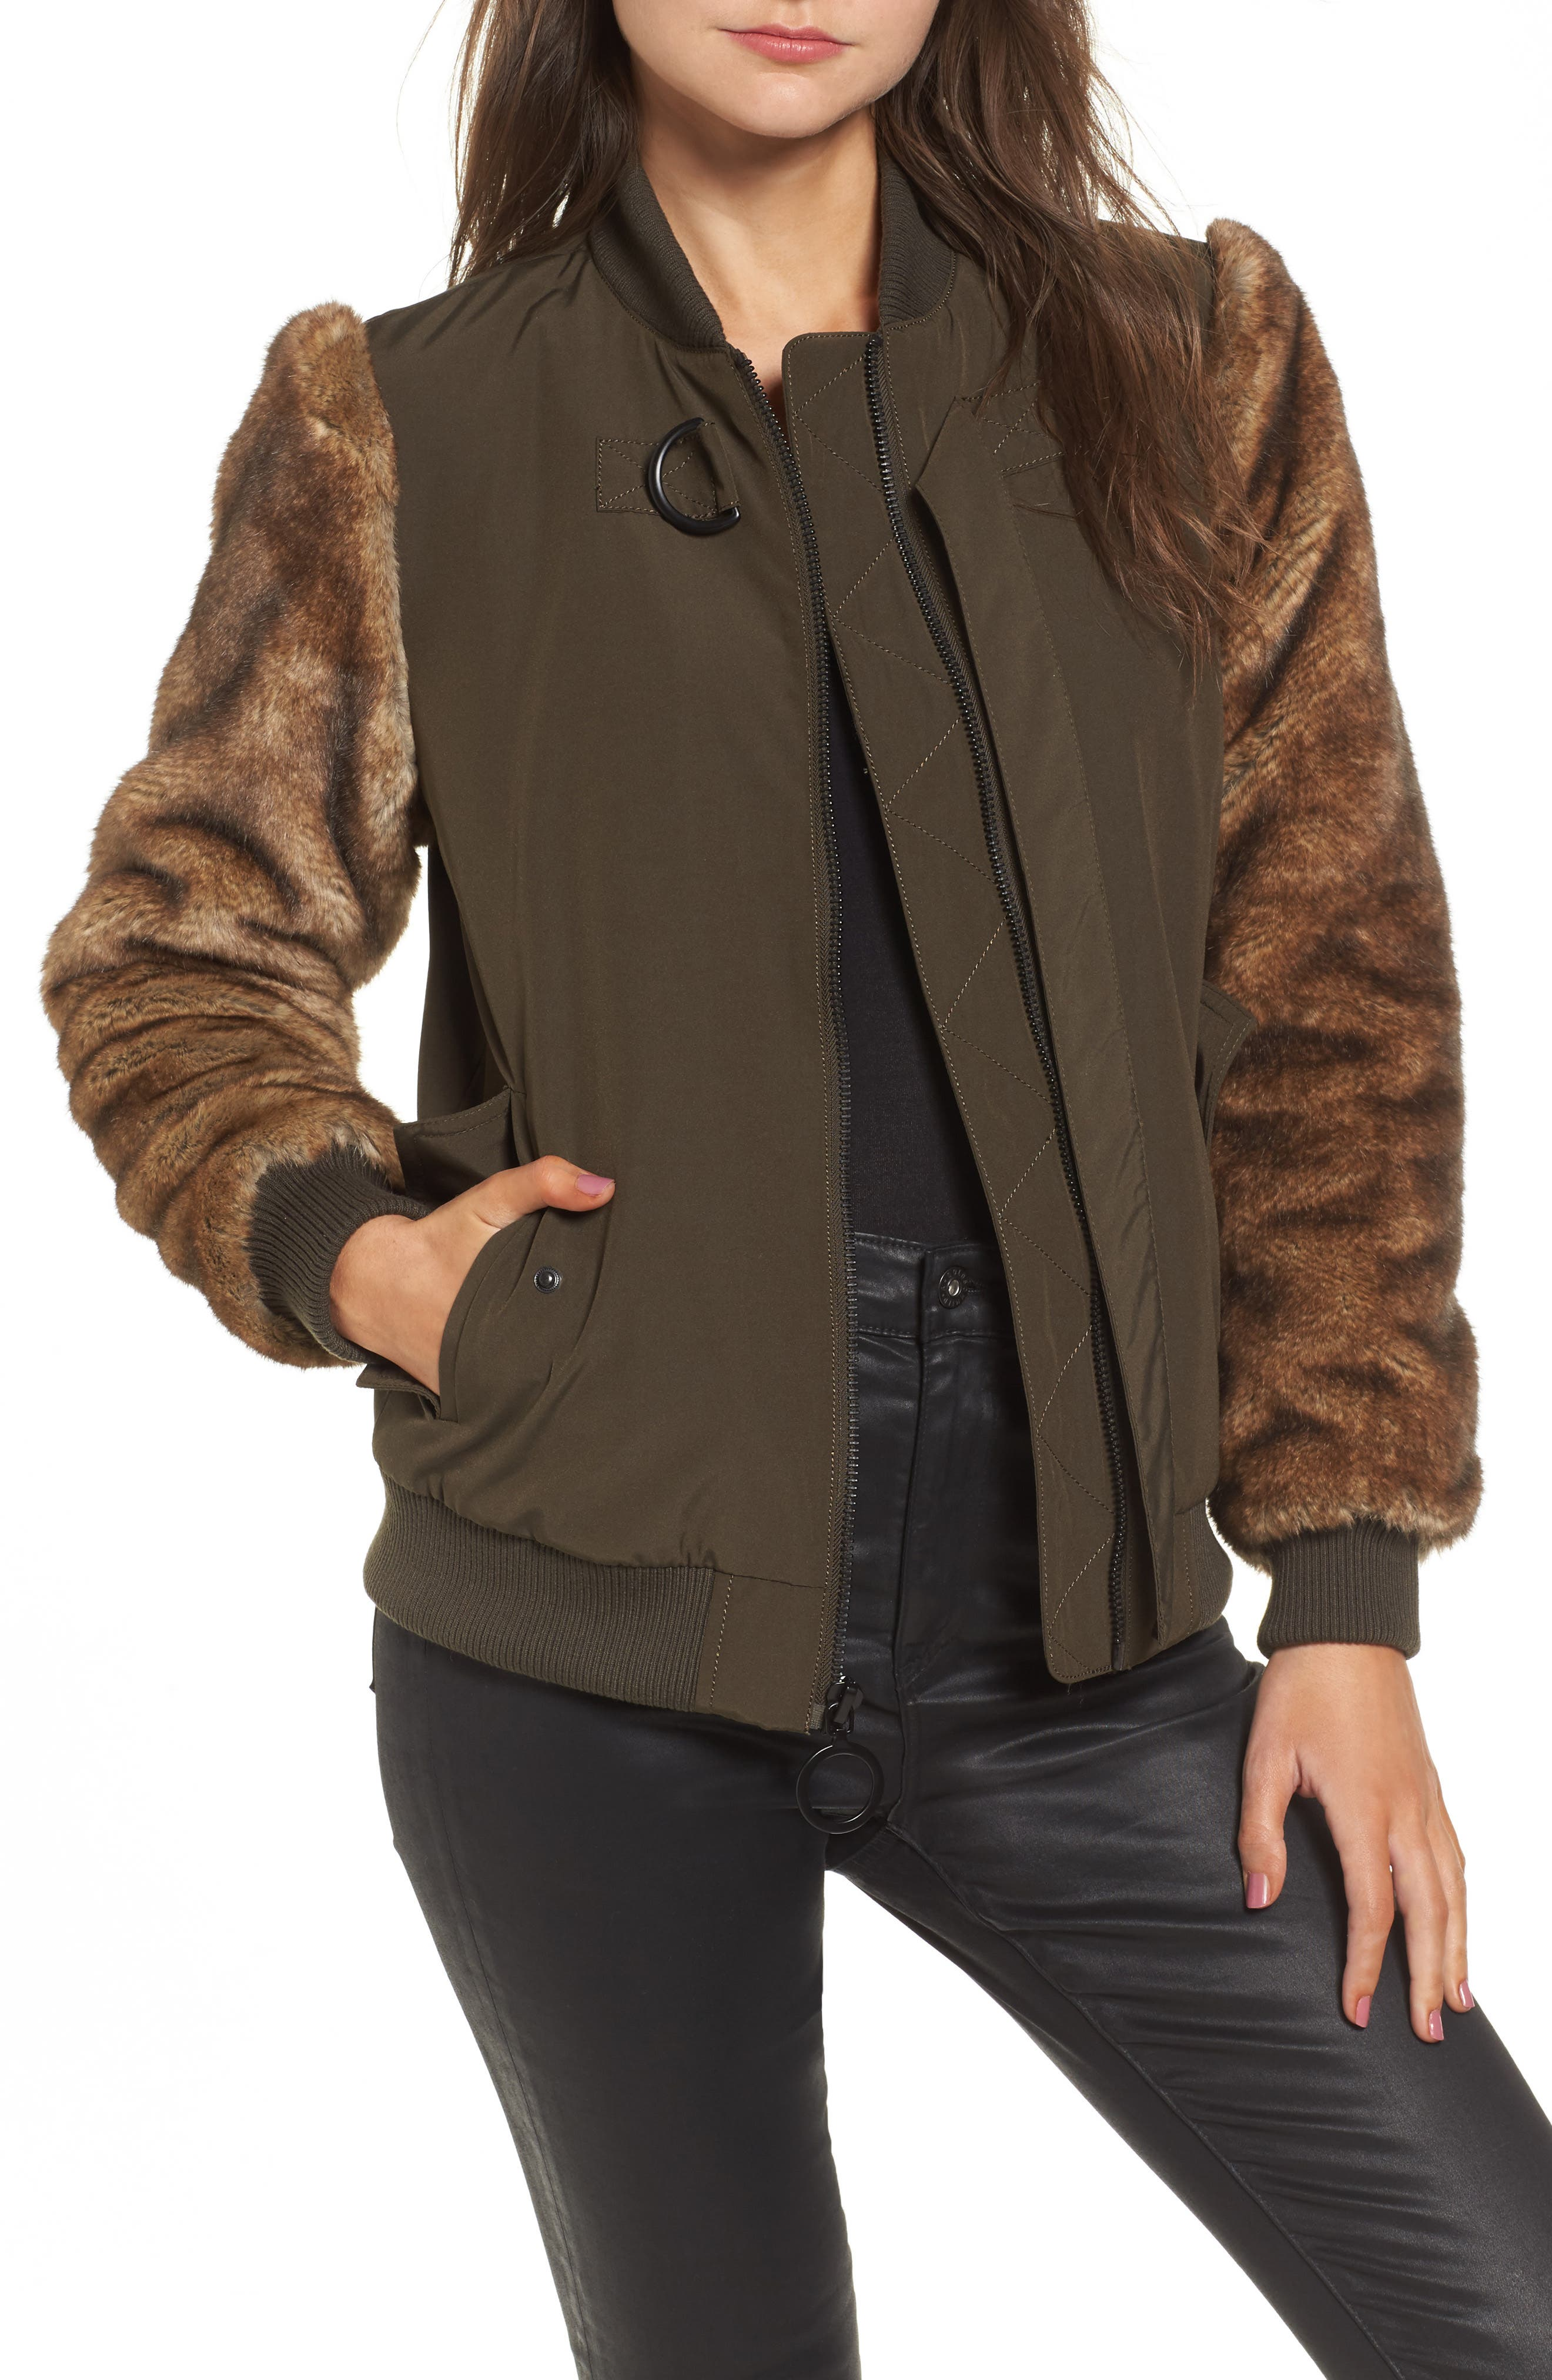 Main Image - KENDALL + KYLIE Faux Fur Sleeve Bomber Jacket